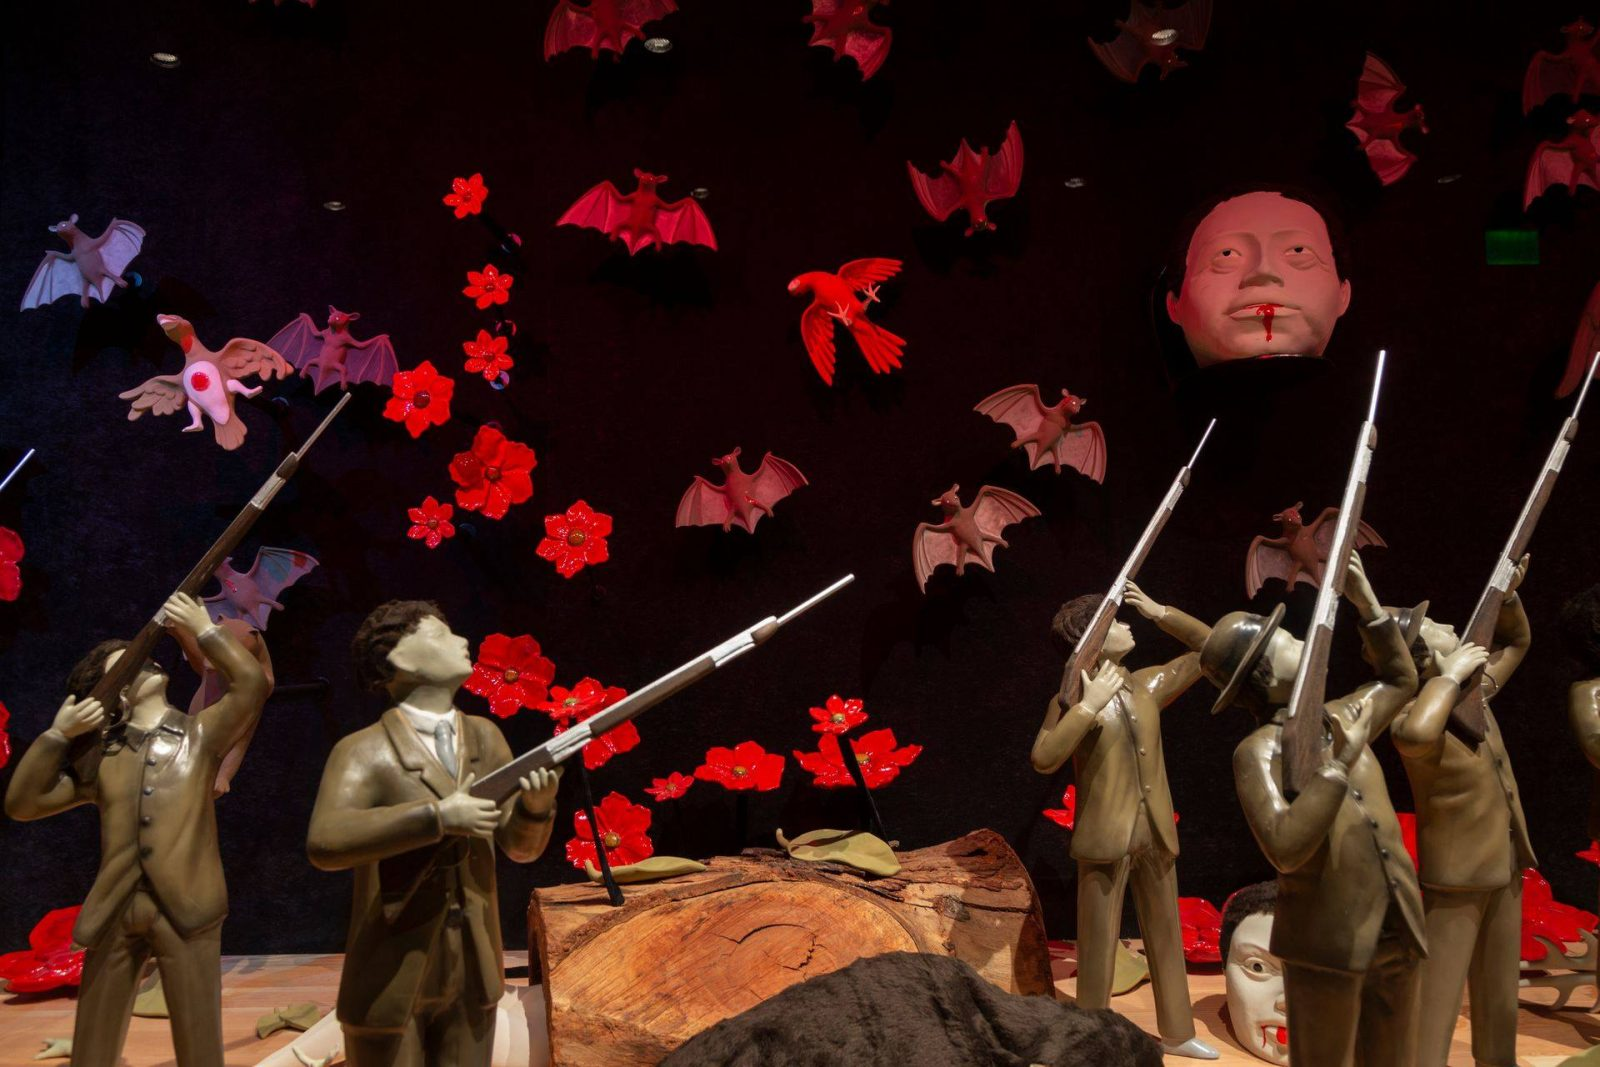 Detail: Two figures stand at left with rifles raised separated from a group of three more figures in much the same pose. The sky area above them is filled with bats and birds and red floating flowers. One bird at left has a red splotch on its chest and outstretched wings. At right a large human head floats among the birds and bats just above the figures' rifles.